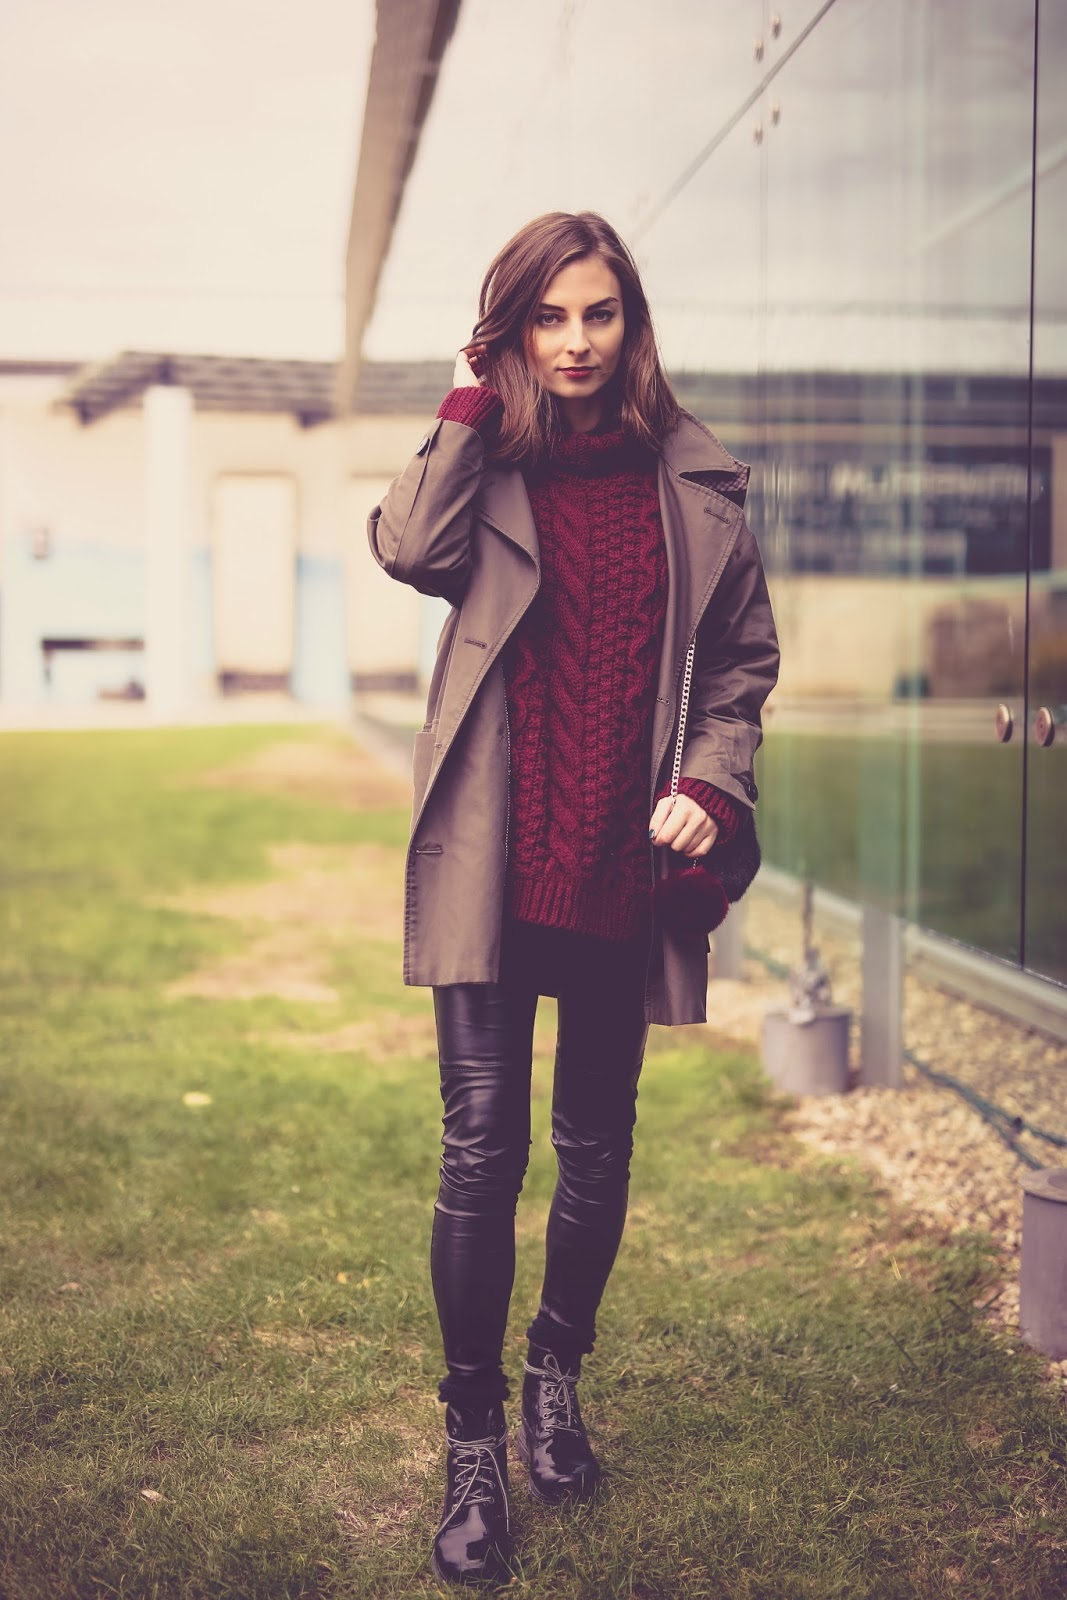 Outfit for rainy days, knitwear, burgundy, autumn, fall, chunky knit, leather pants, trousers, caterpillar boots, patent leather shoes, millitary coat, mango, zara, h&m, lipstick, style blog, fasion, ootd, lookof the day, street style, aw15